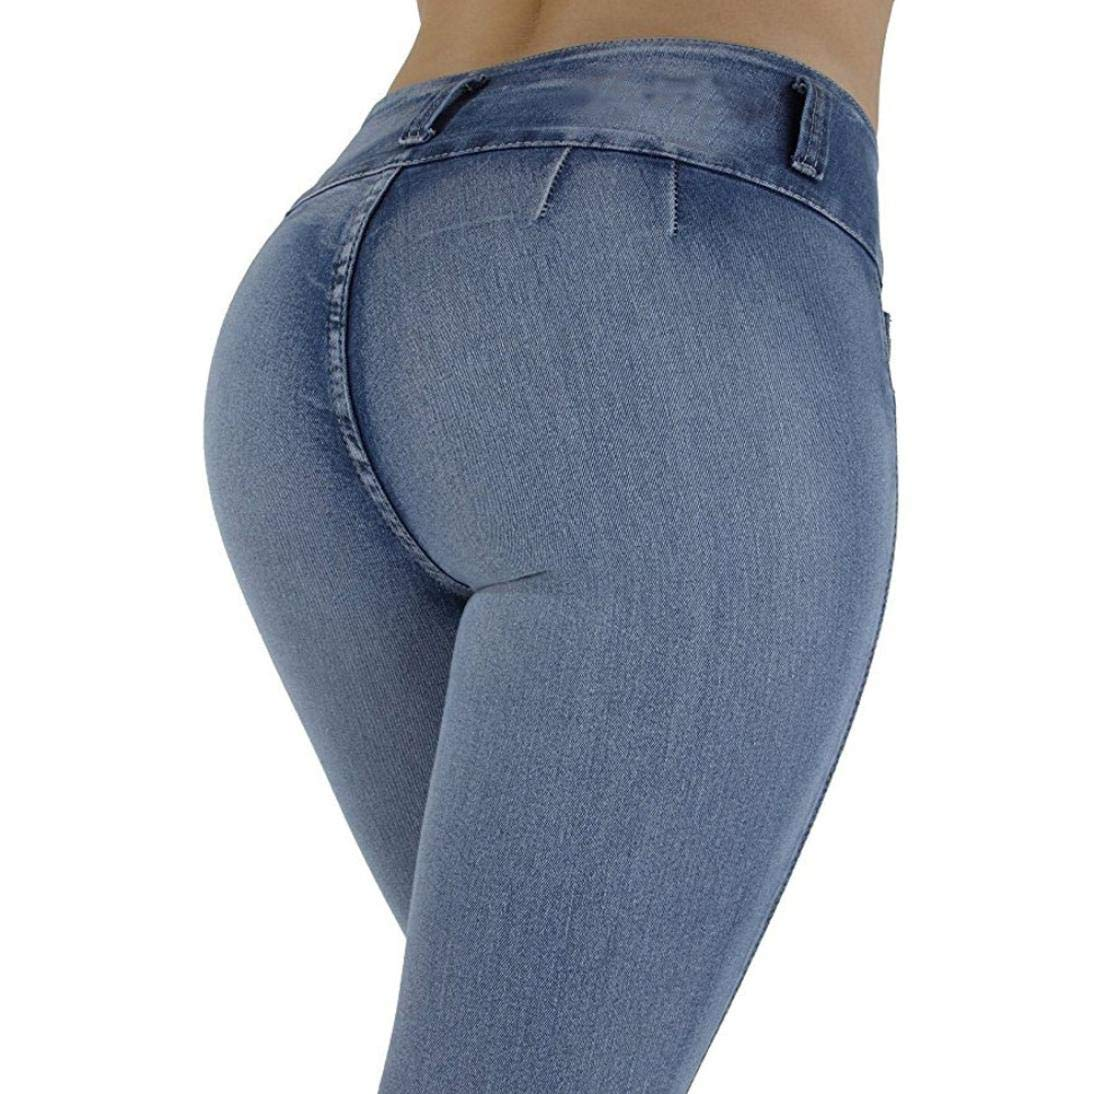 scaling Jeans for Women Women High Waisted Skinny Denim Jeans Stretch Slim Pants Calf Length Jeans